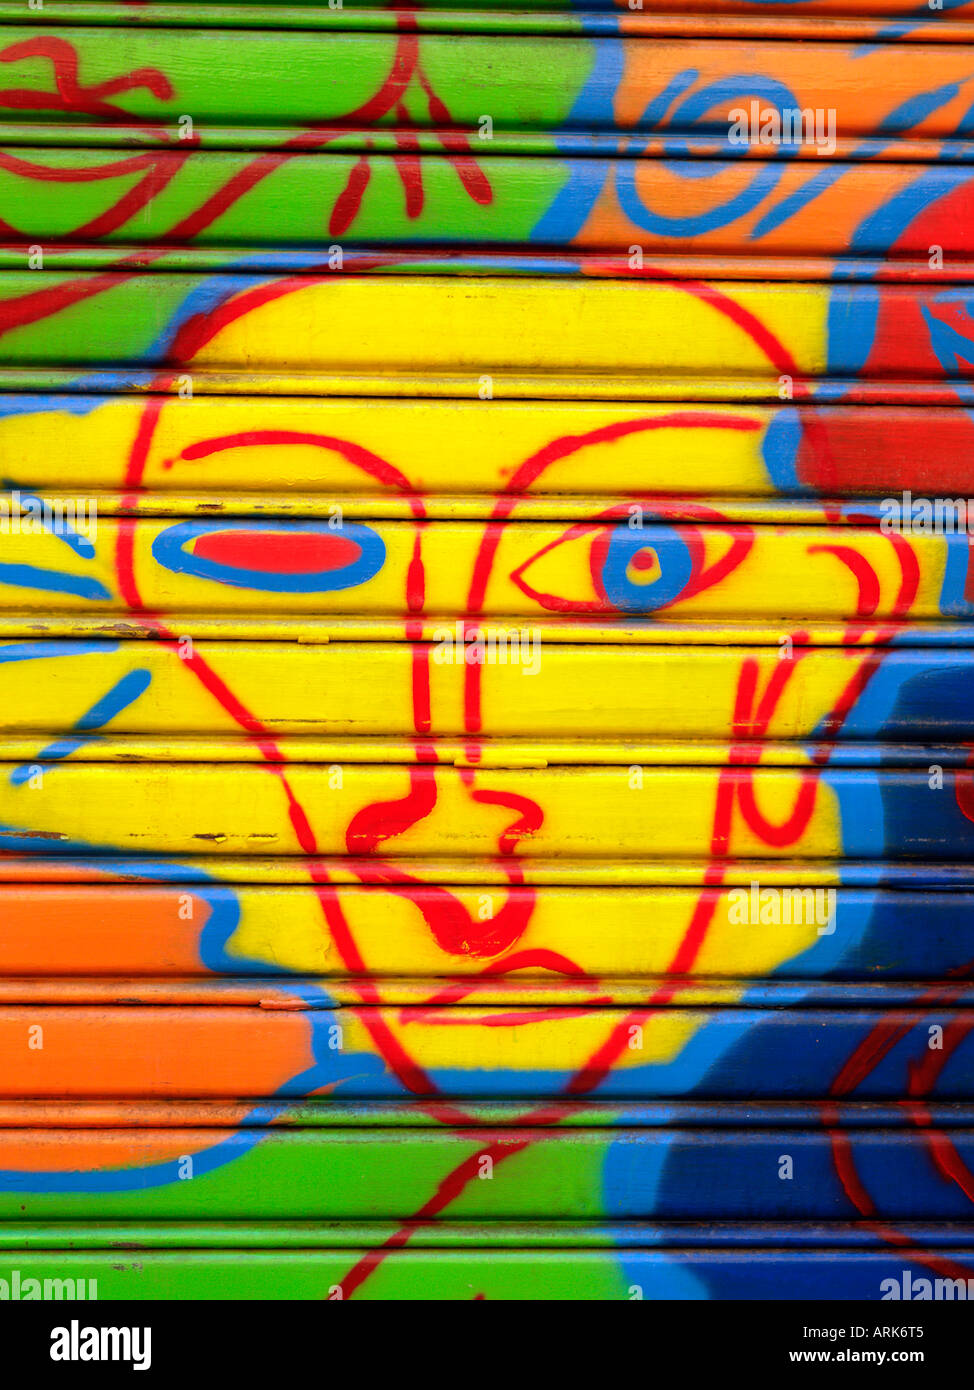 bizarre yellow face painted on shop security shutters - Stock Image